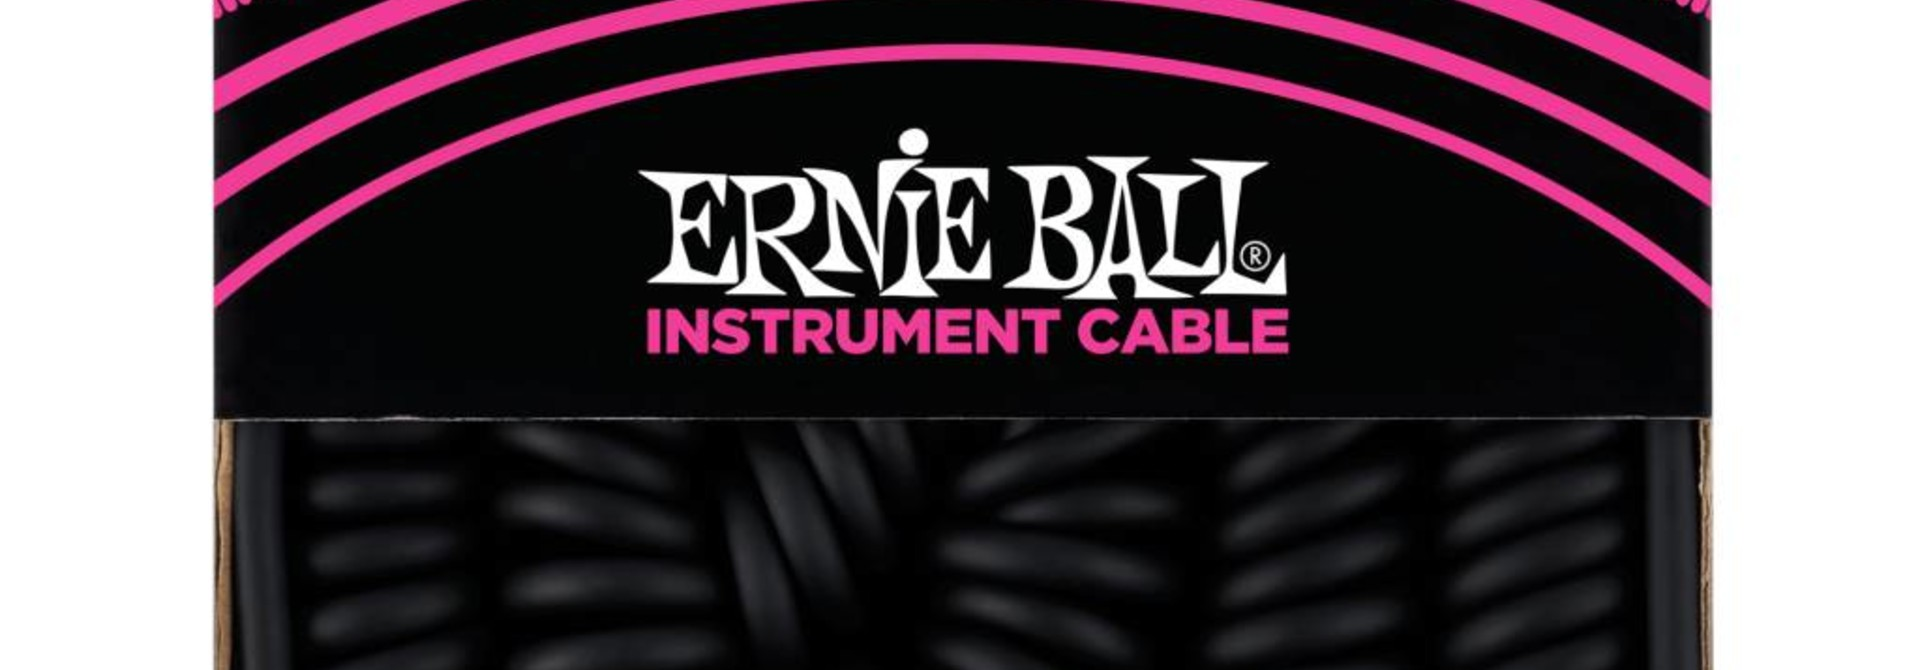 Ernie Ball Instrument Cable 30 ft Coiled Straight/ Straight